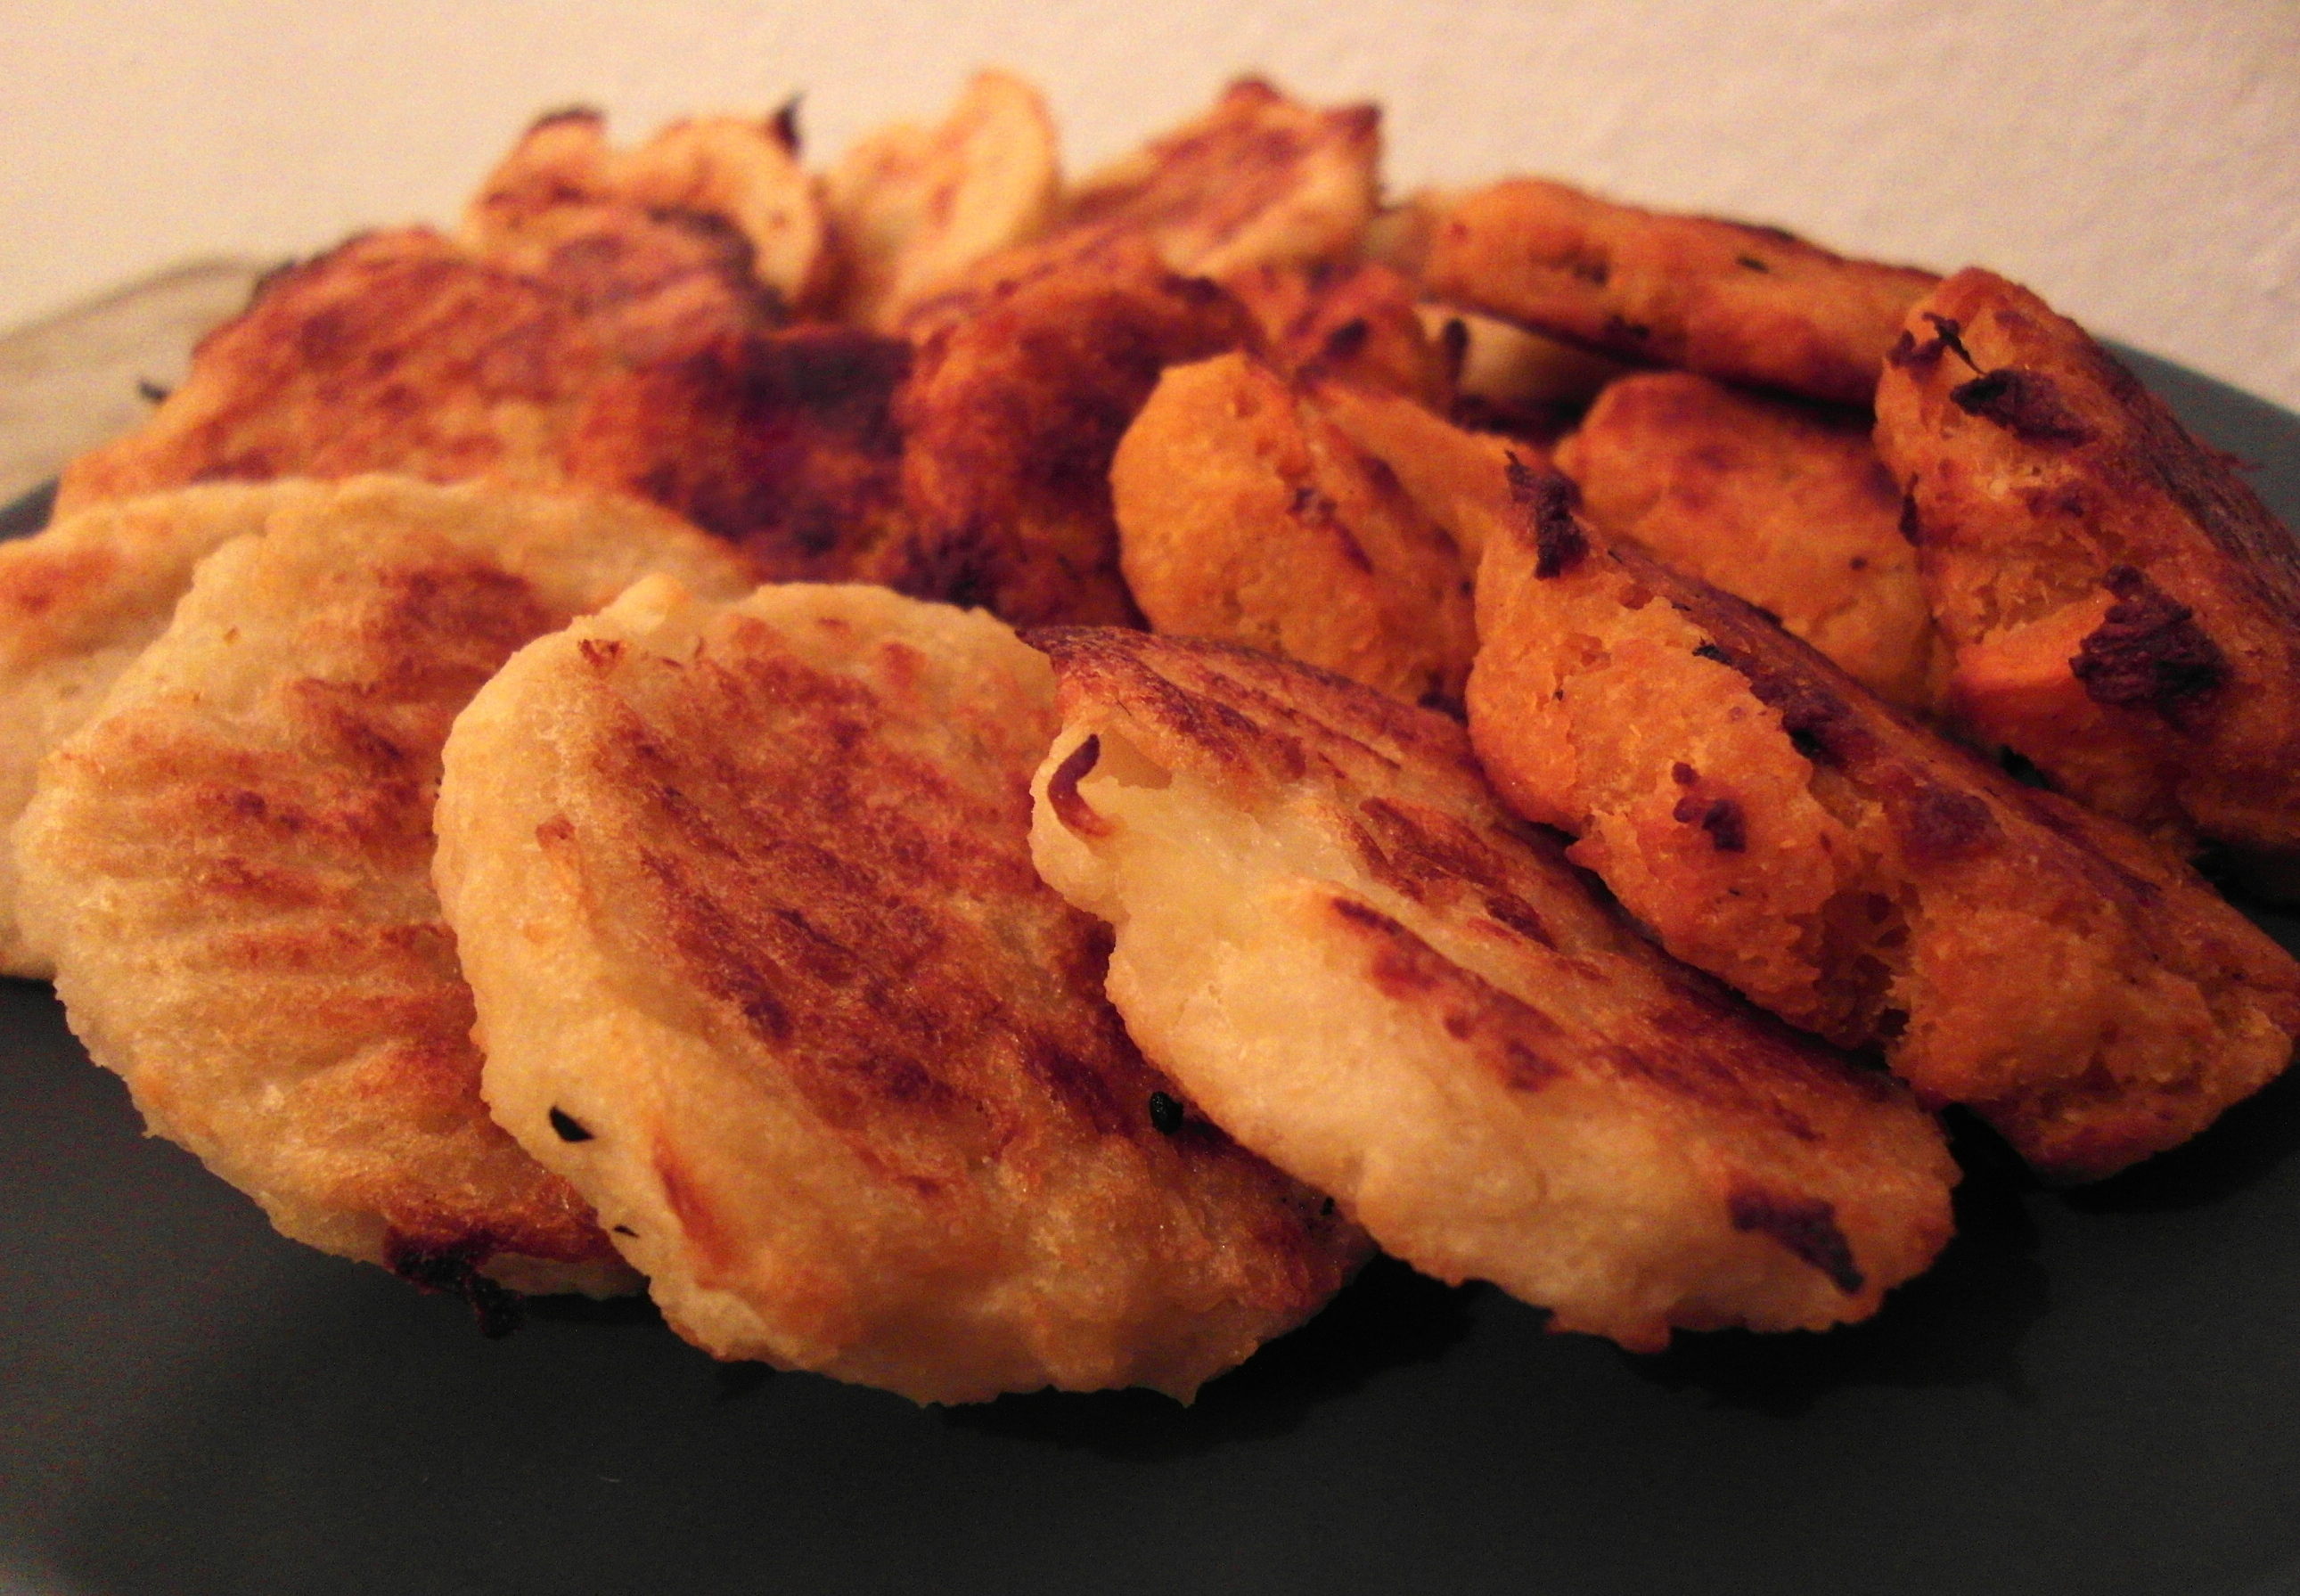 Oven Baked Vegan Potato Latkes Vegan Recipes by Vegan Slaughterer Yaeli Shochat